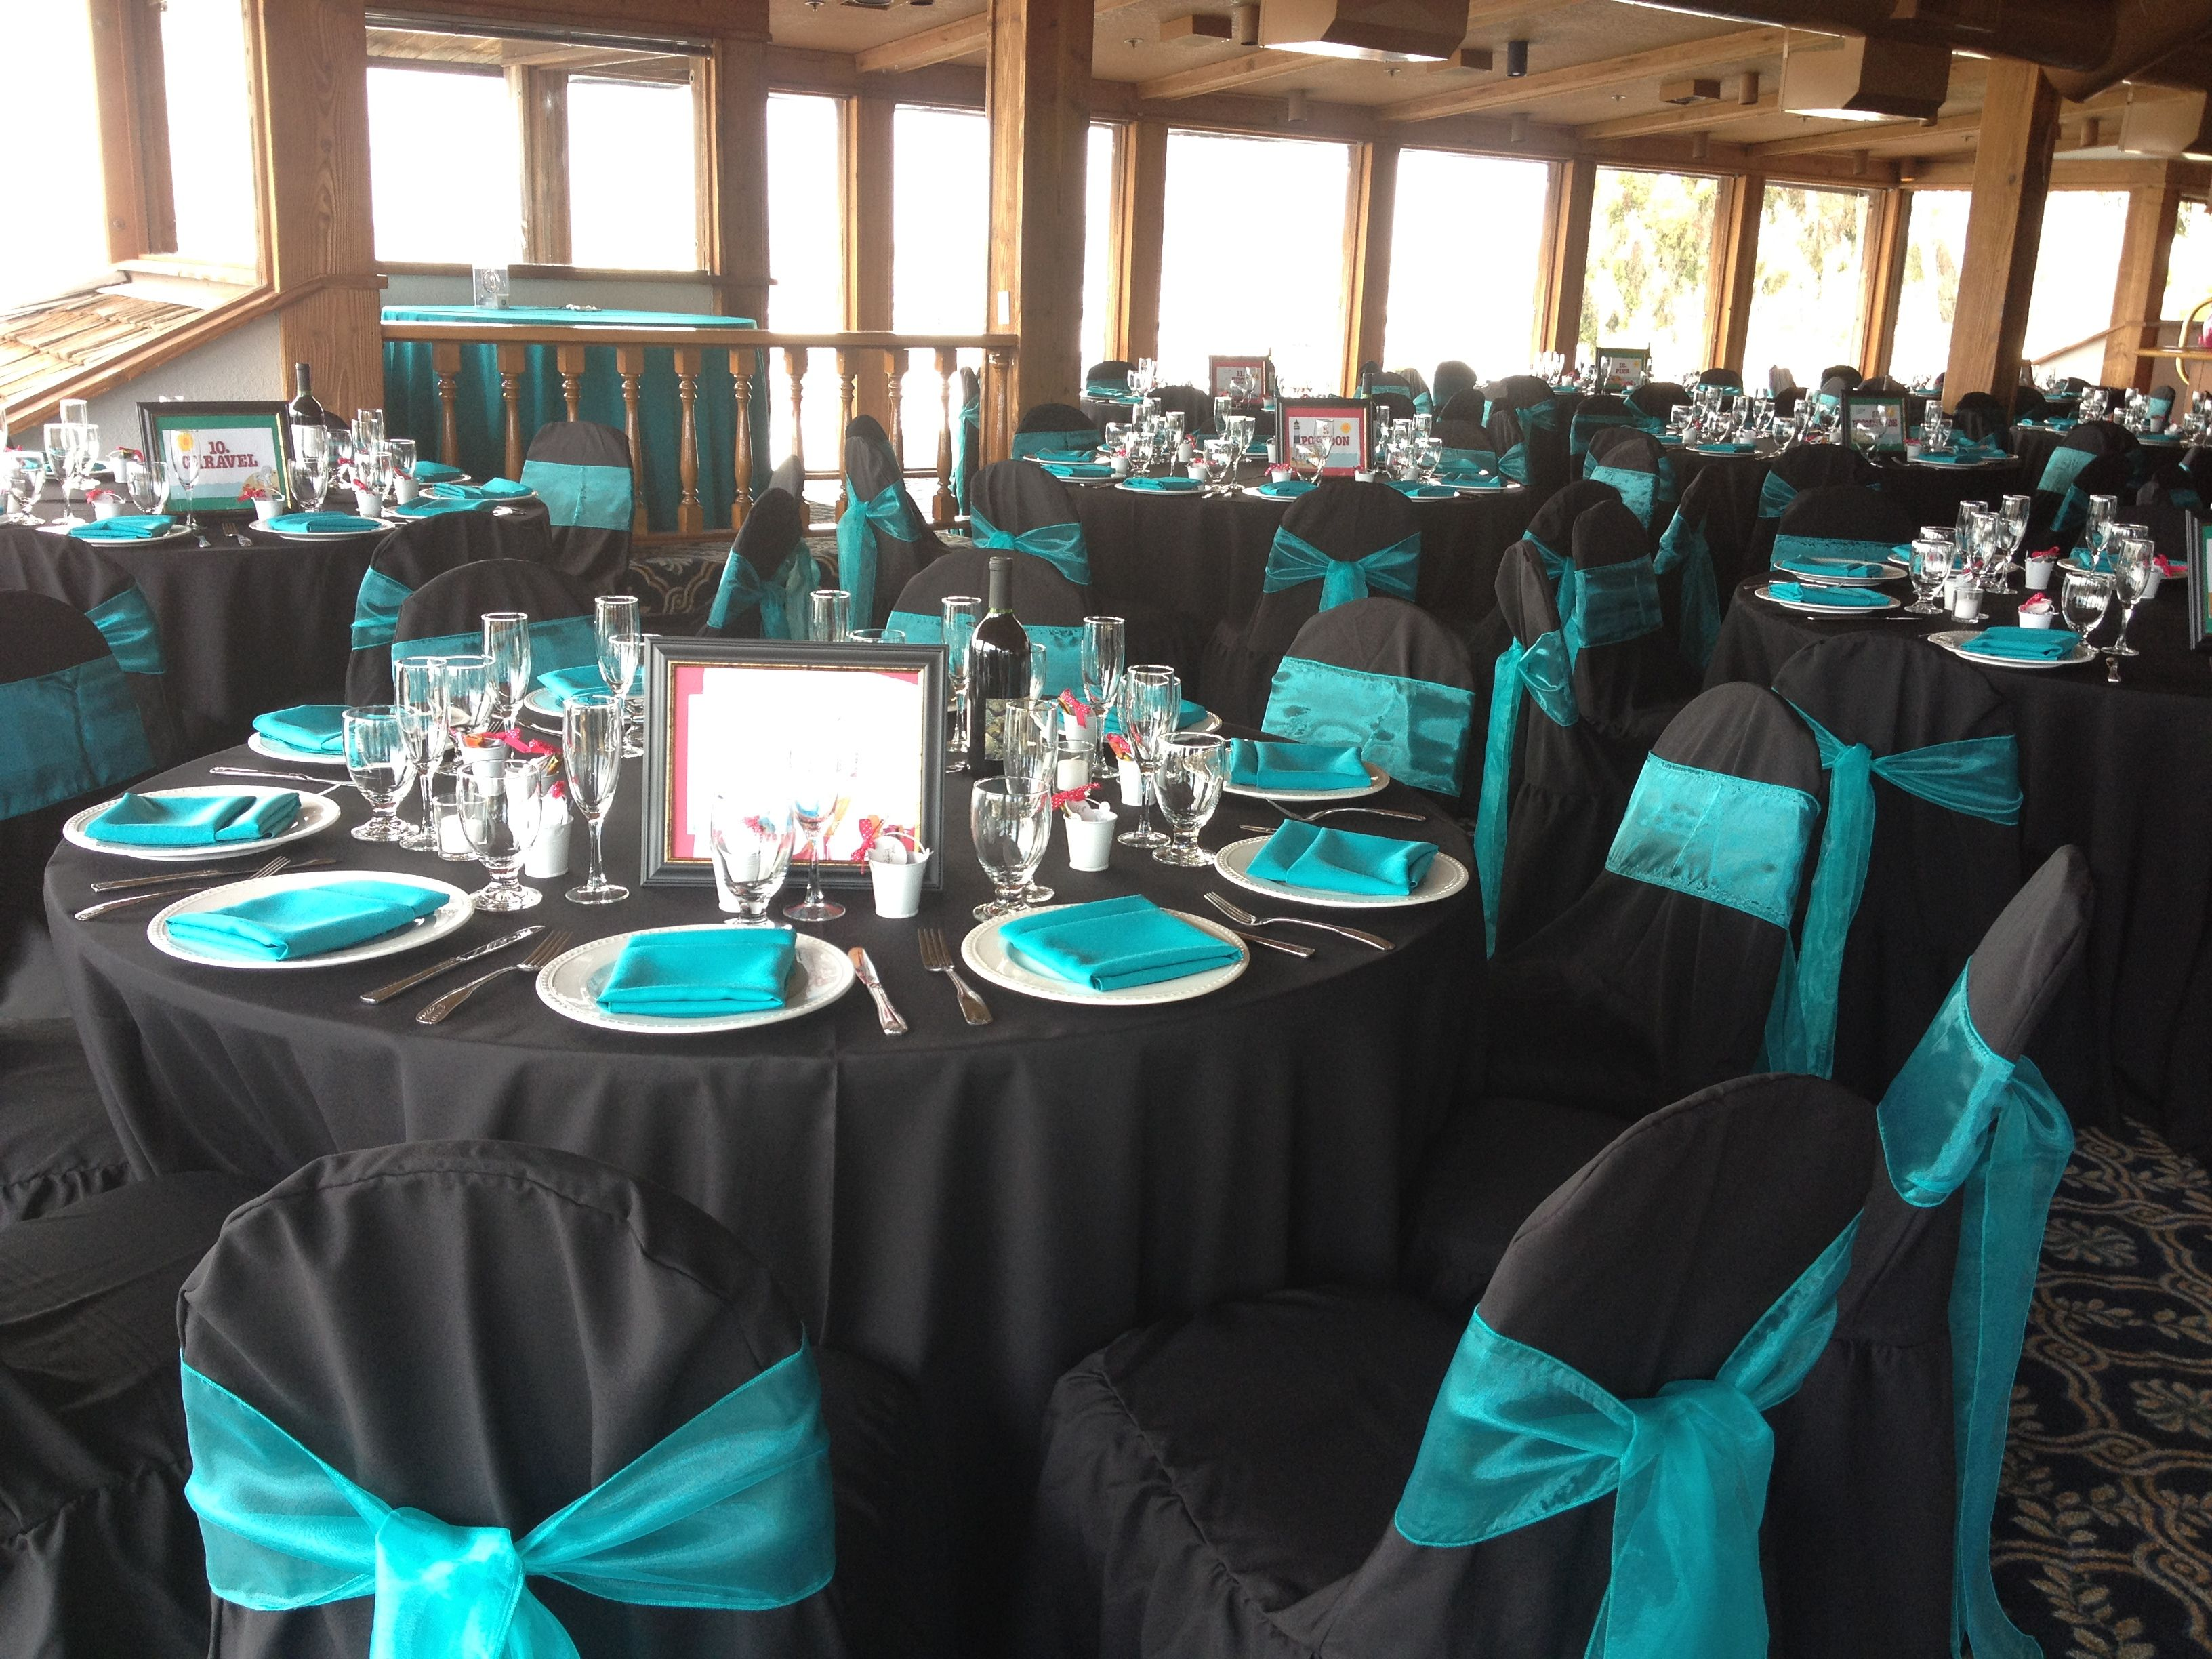 teal chair covers for wedding swivel hub liner marina village venue black linens with turquoise napkins